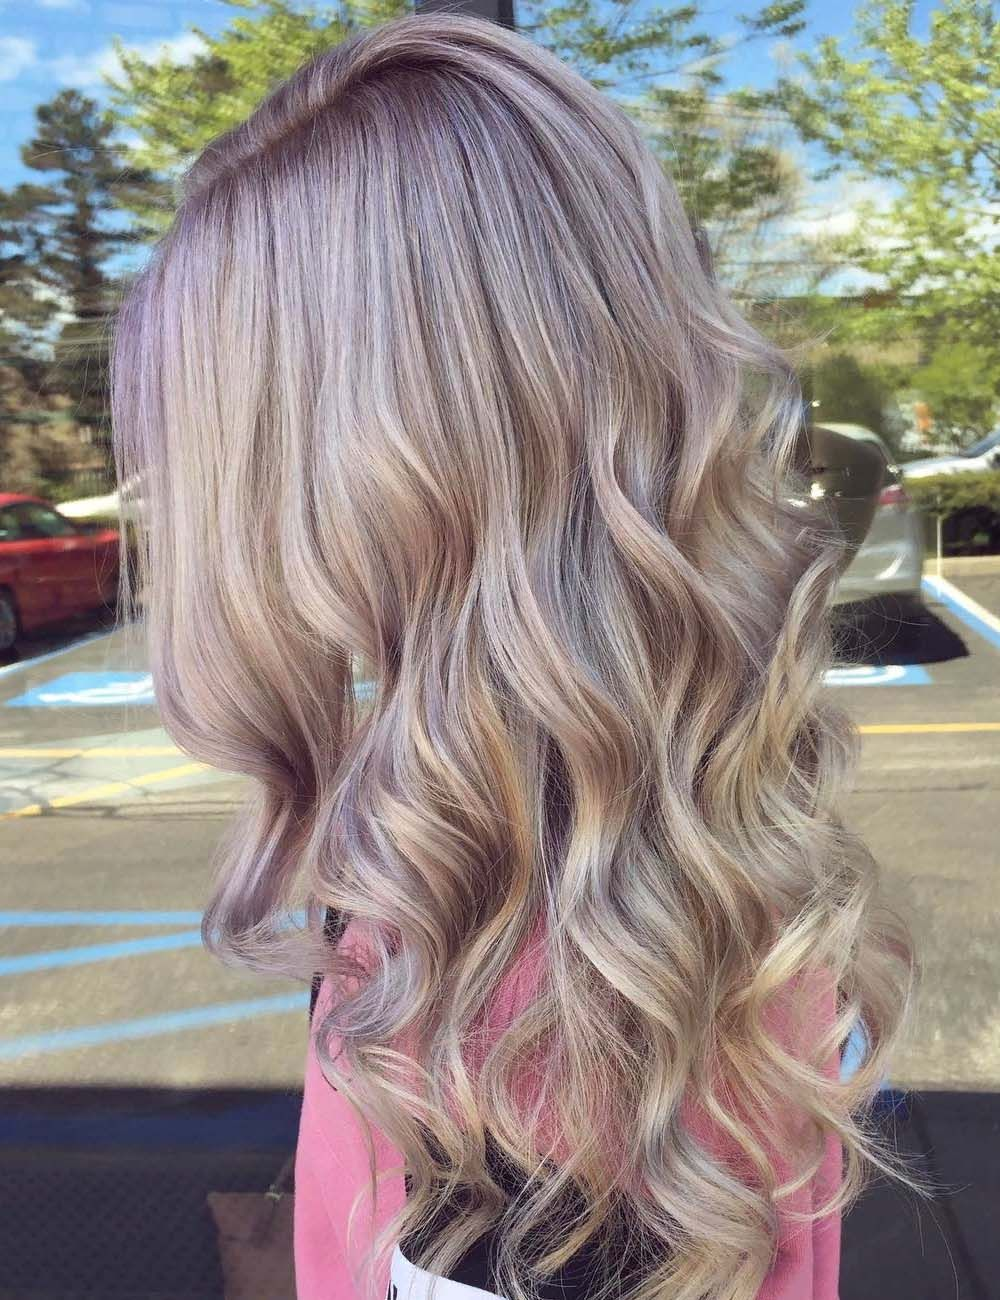 Gorgeous Dusty Rose Hair Color Shades To Try In 2019 Cleverstyling Dusty Rose Hair Hair Color Shades Hair Color